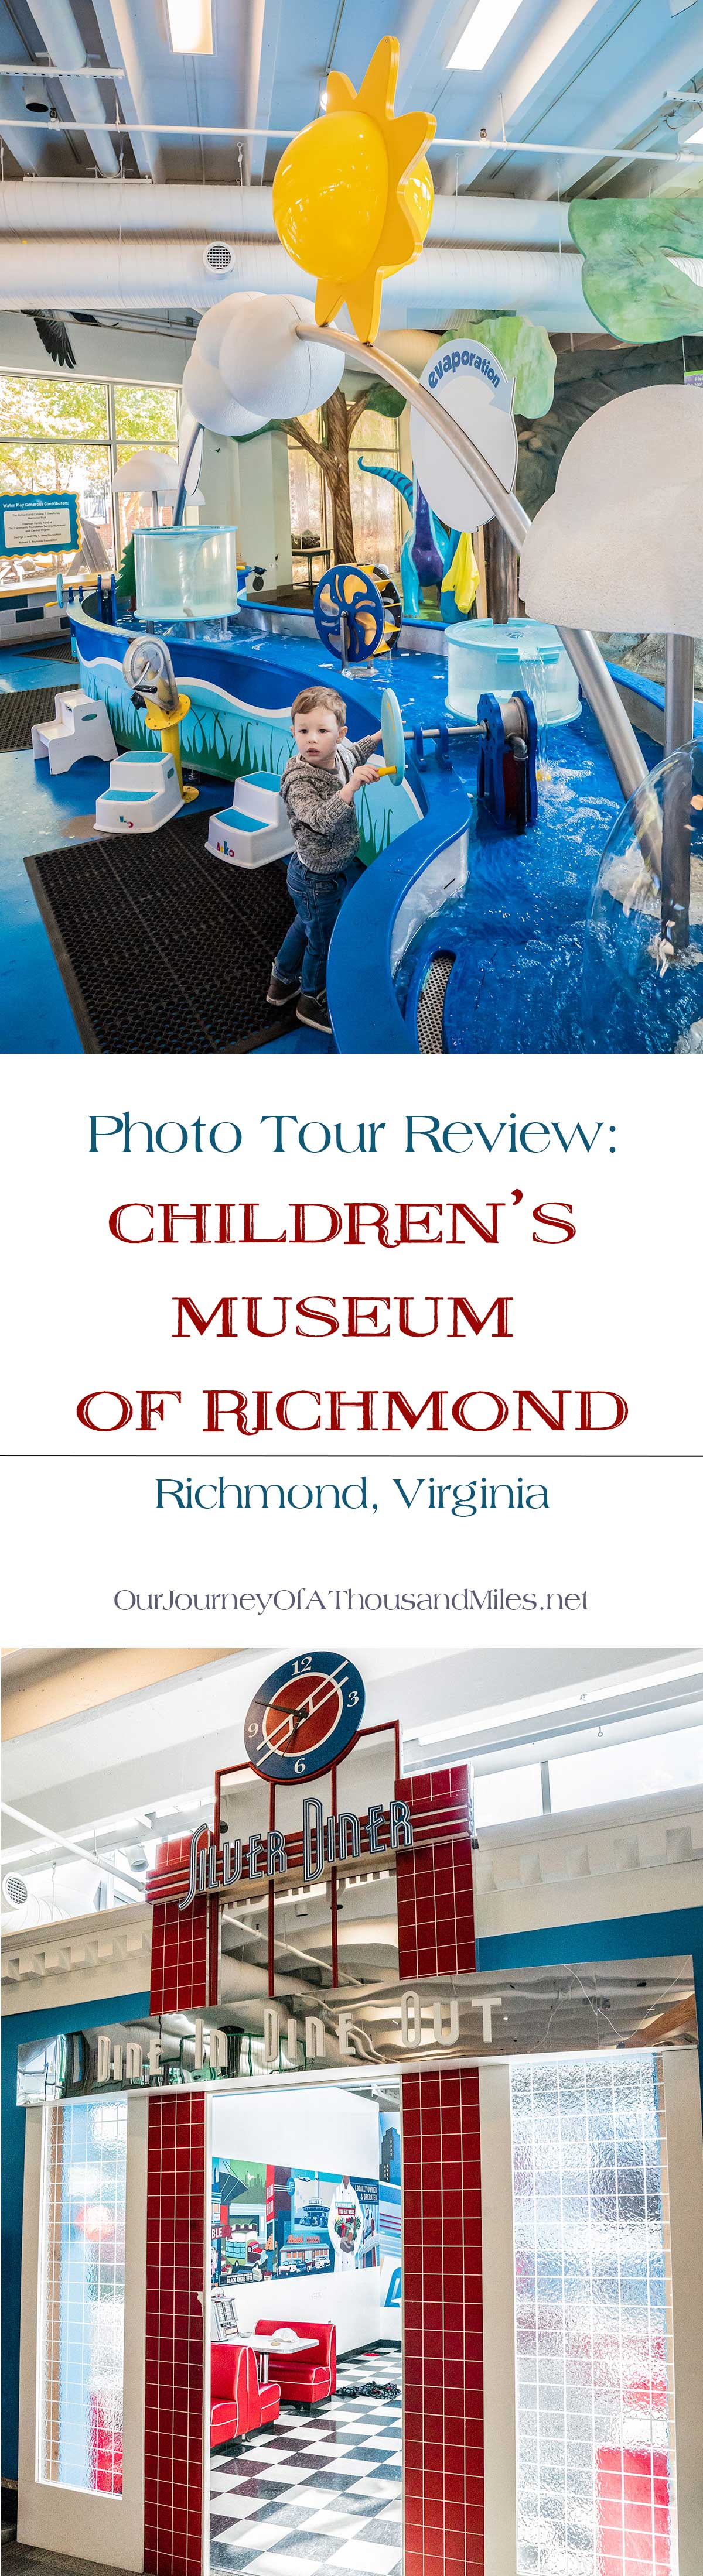 Photo-Tour-Review-of-the-Childrens-Museum-of-Richmond